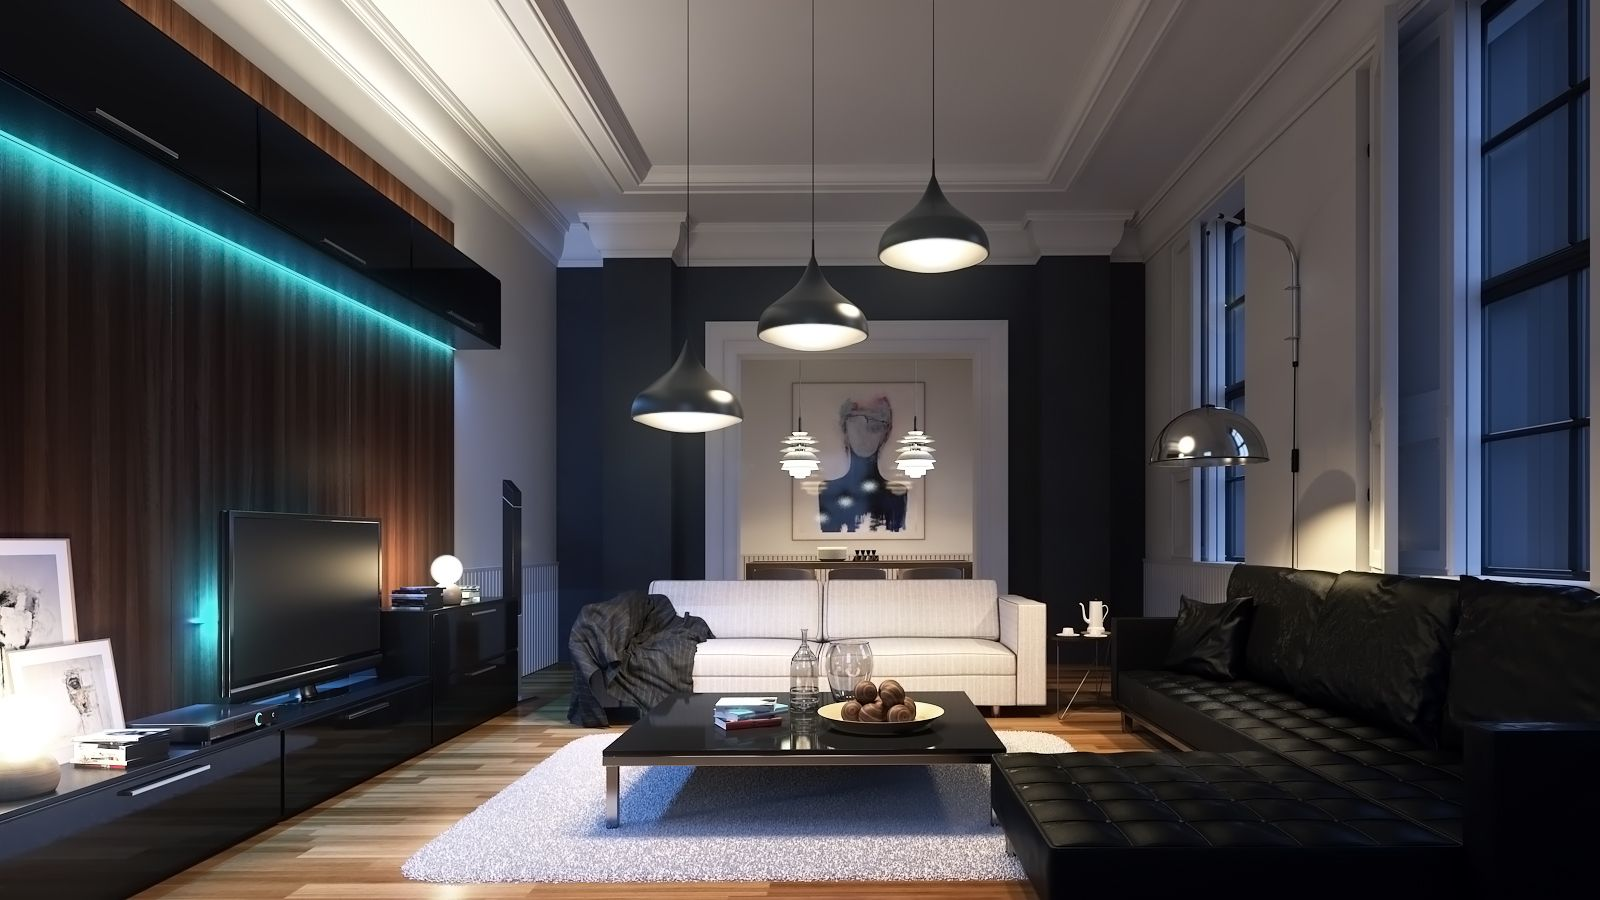 3ds max vray interior rendering google search for Interior lighting design